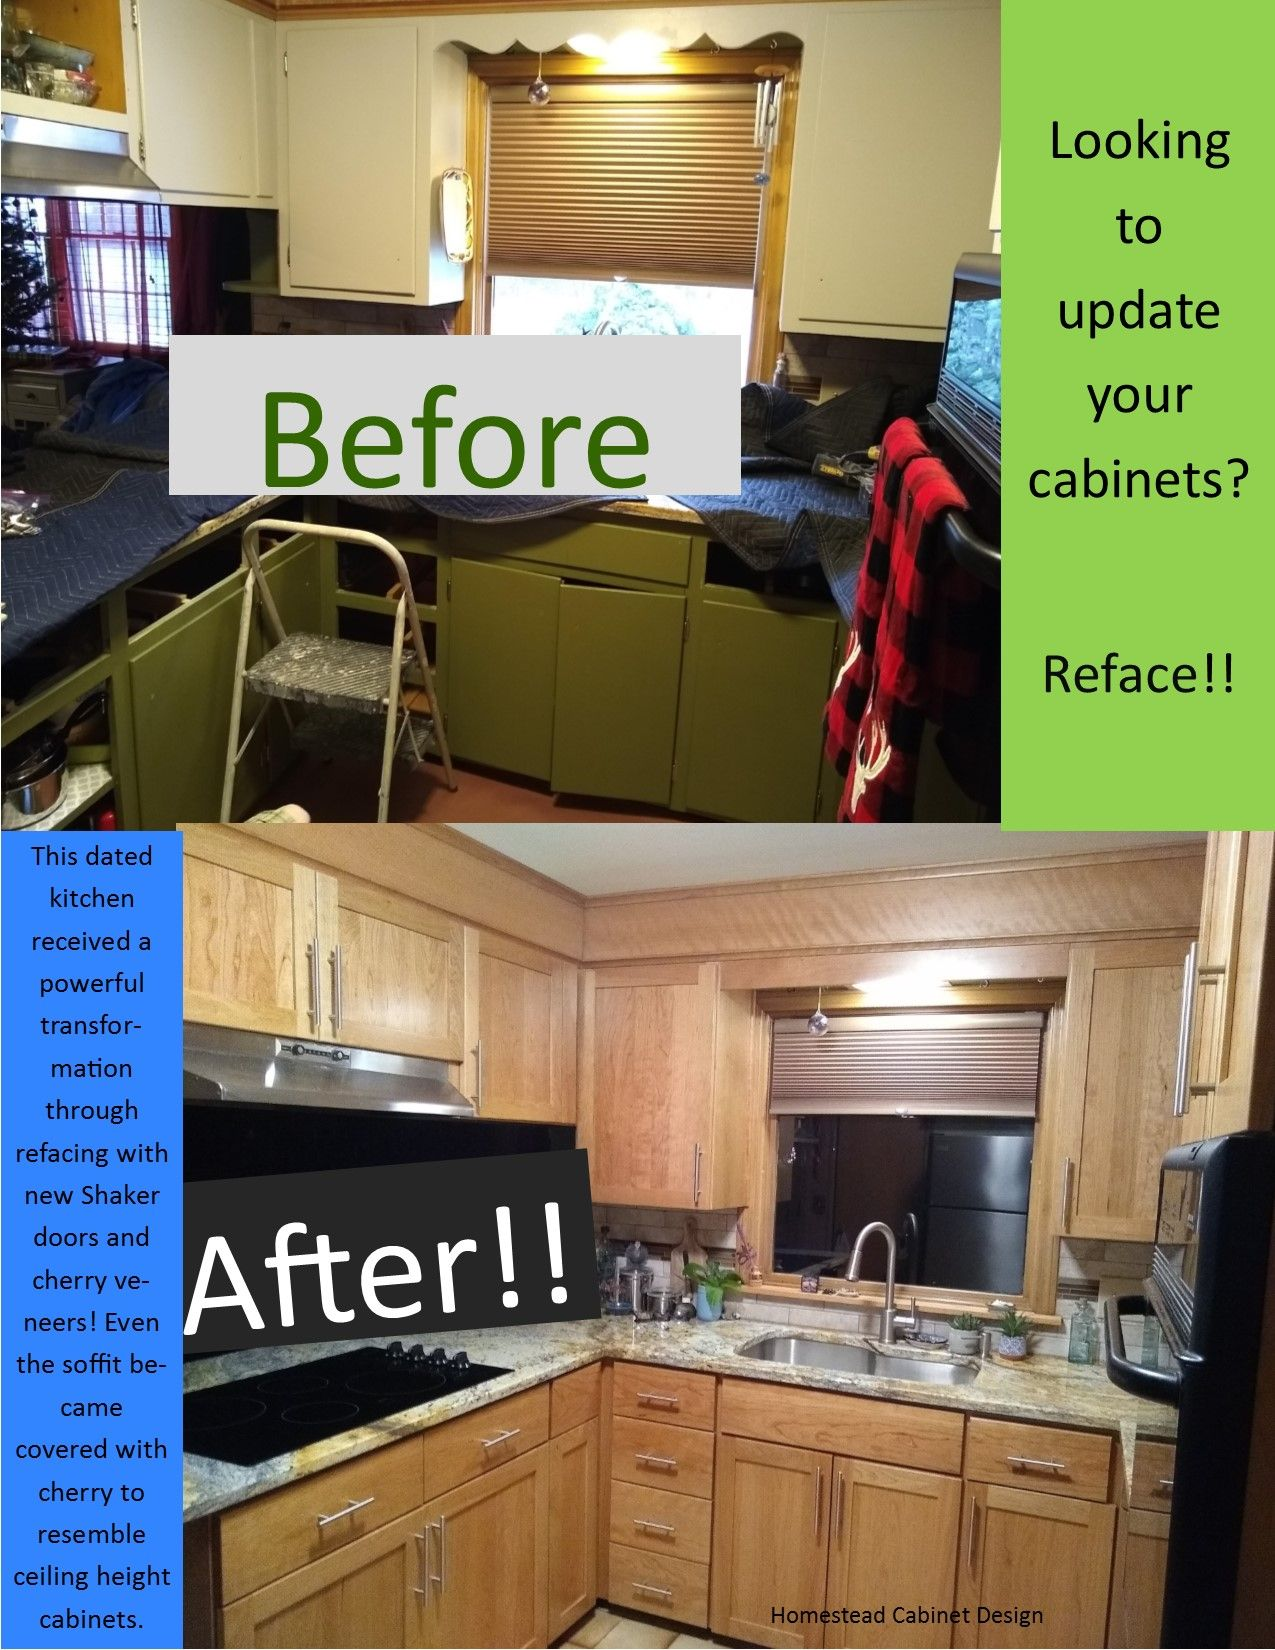 Cabinet Refacing Call In The Experts In 2020 Cabinet Design Cabinet Refacing Reface